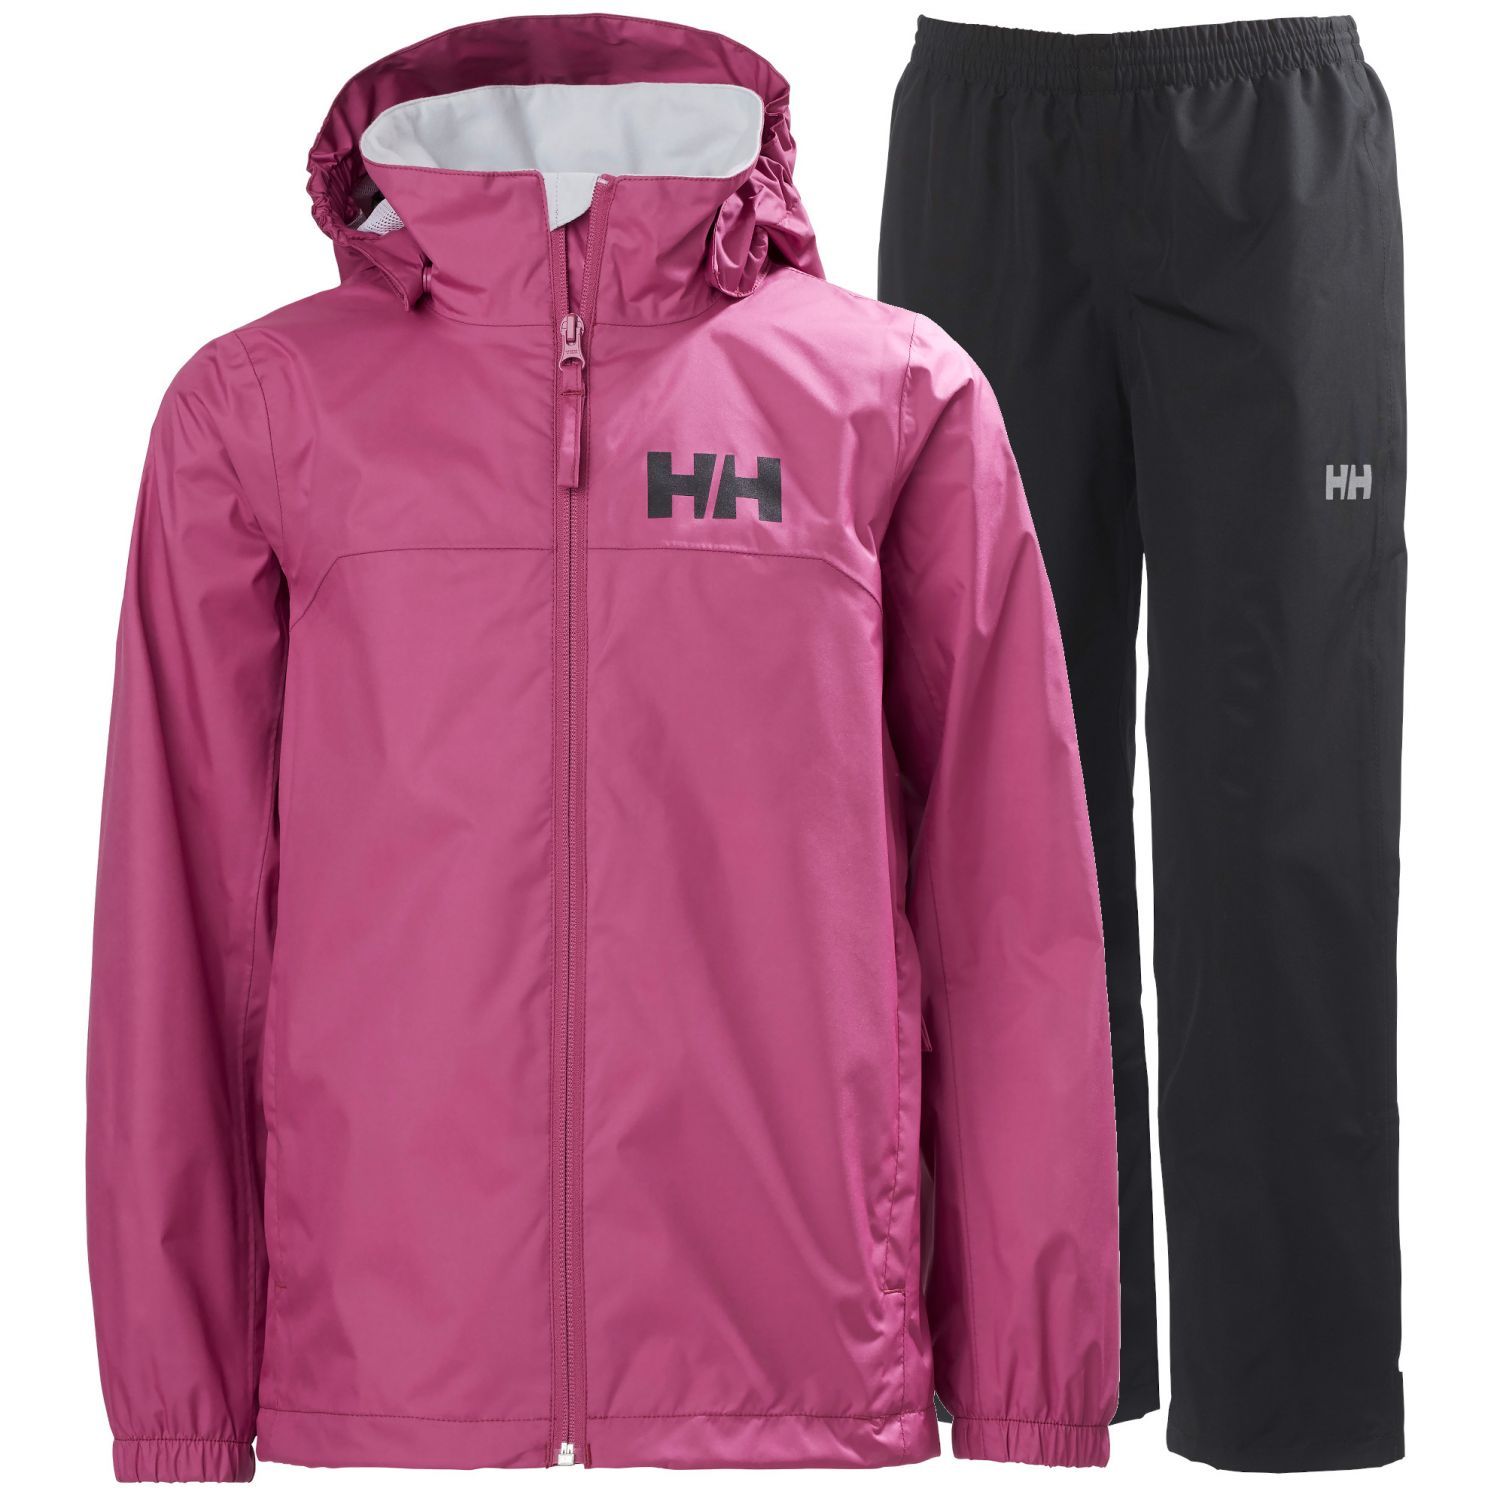 Helly Hansen Urban/Dubliner regnsæt, junior, lilla/sort